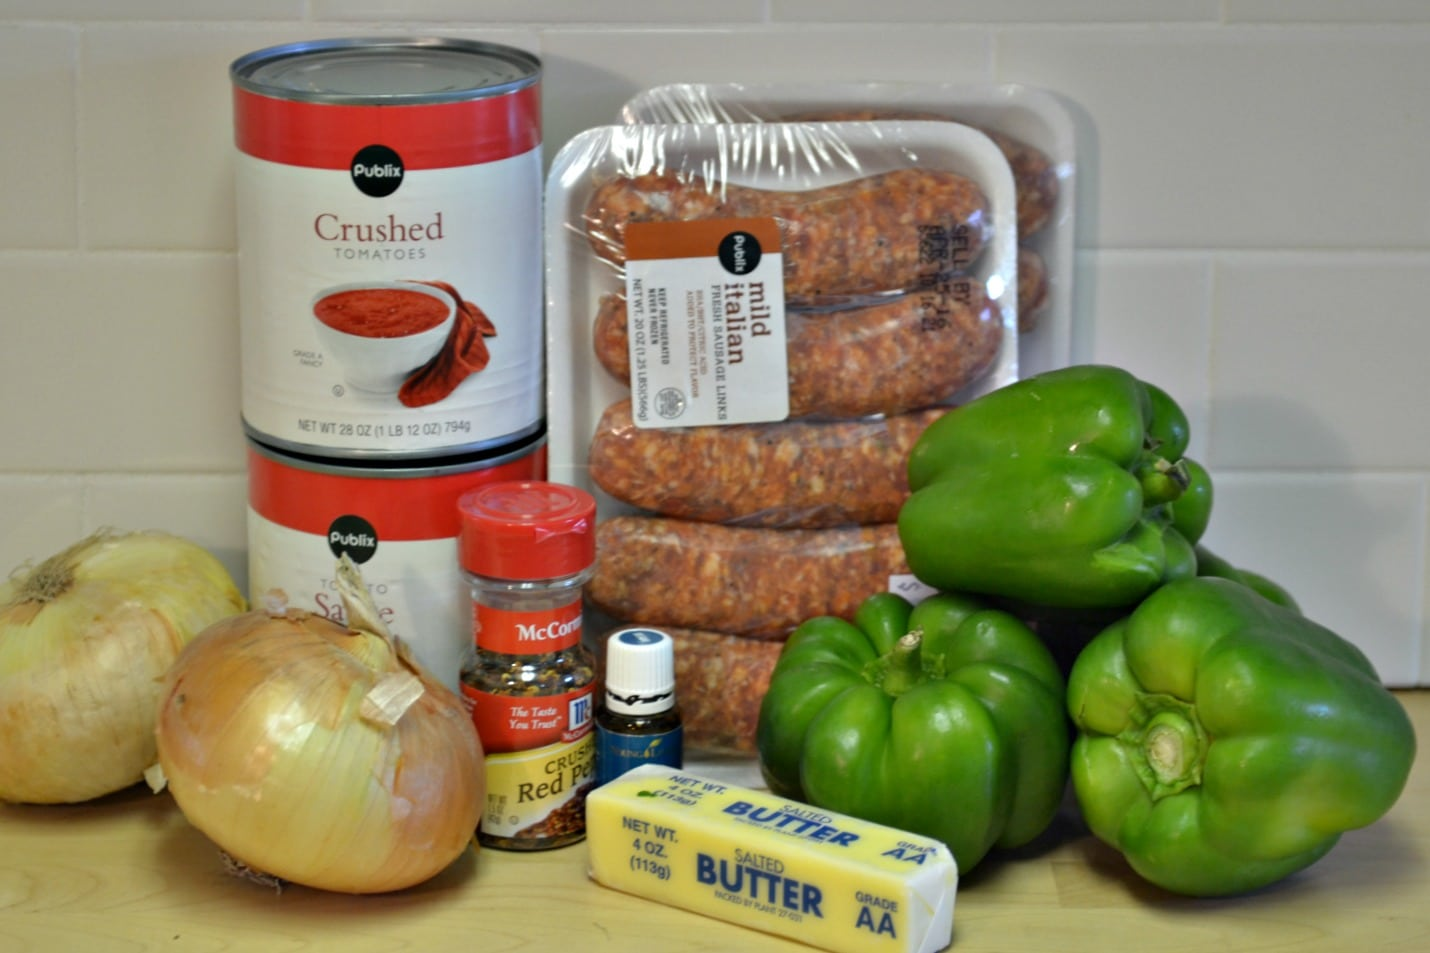 Gather the ingredients for these yummy slow cooker sausage and peppers: onion, tomatoes, spices, butter, peppers and of course, sausage.